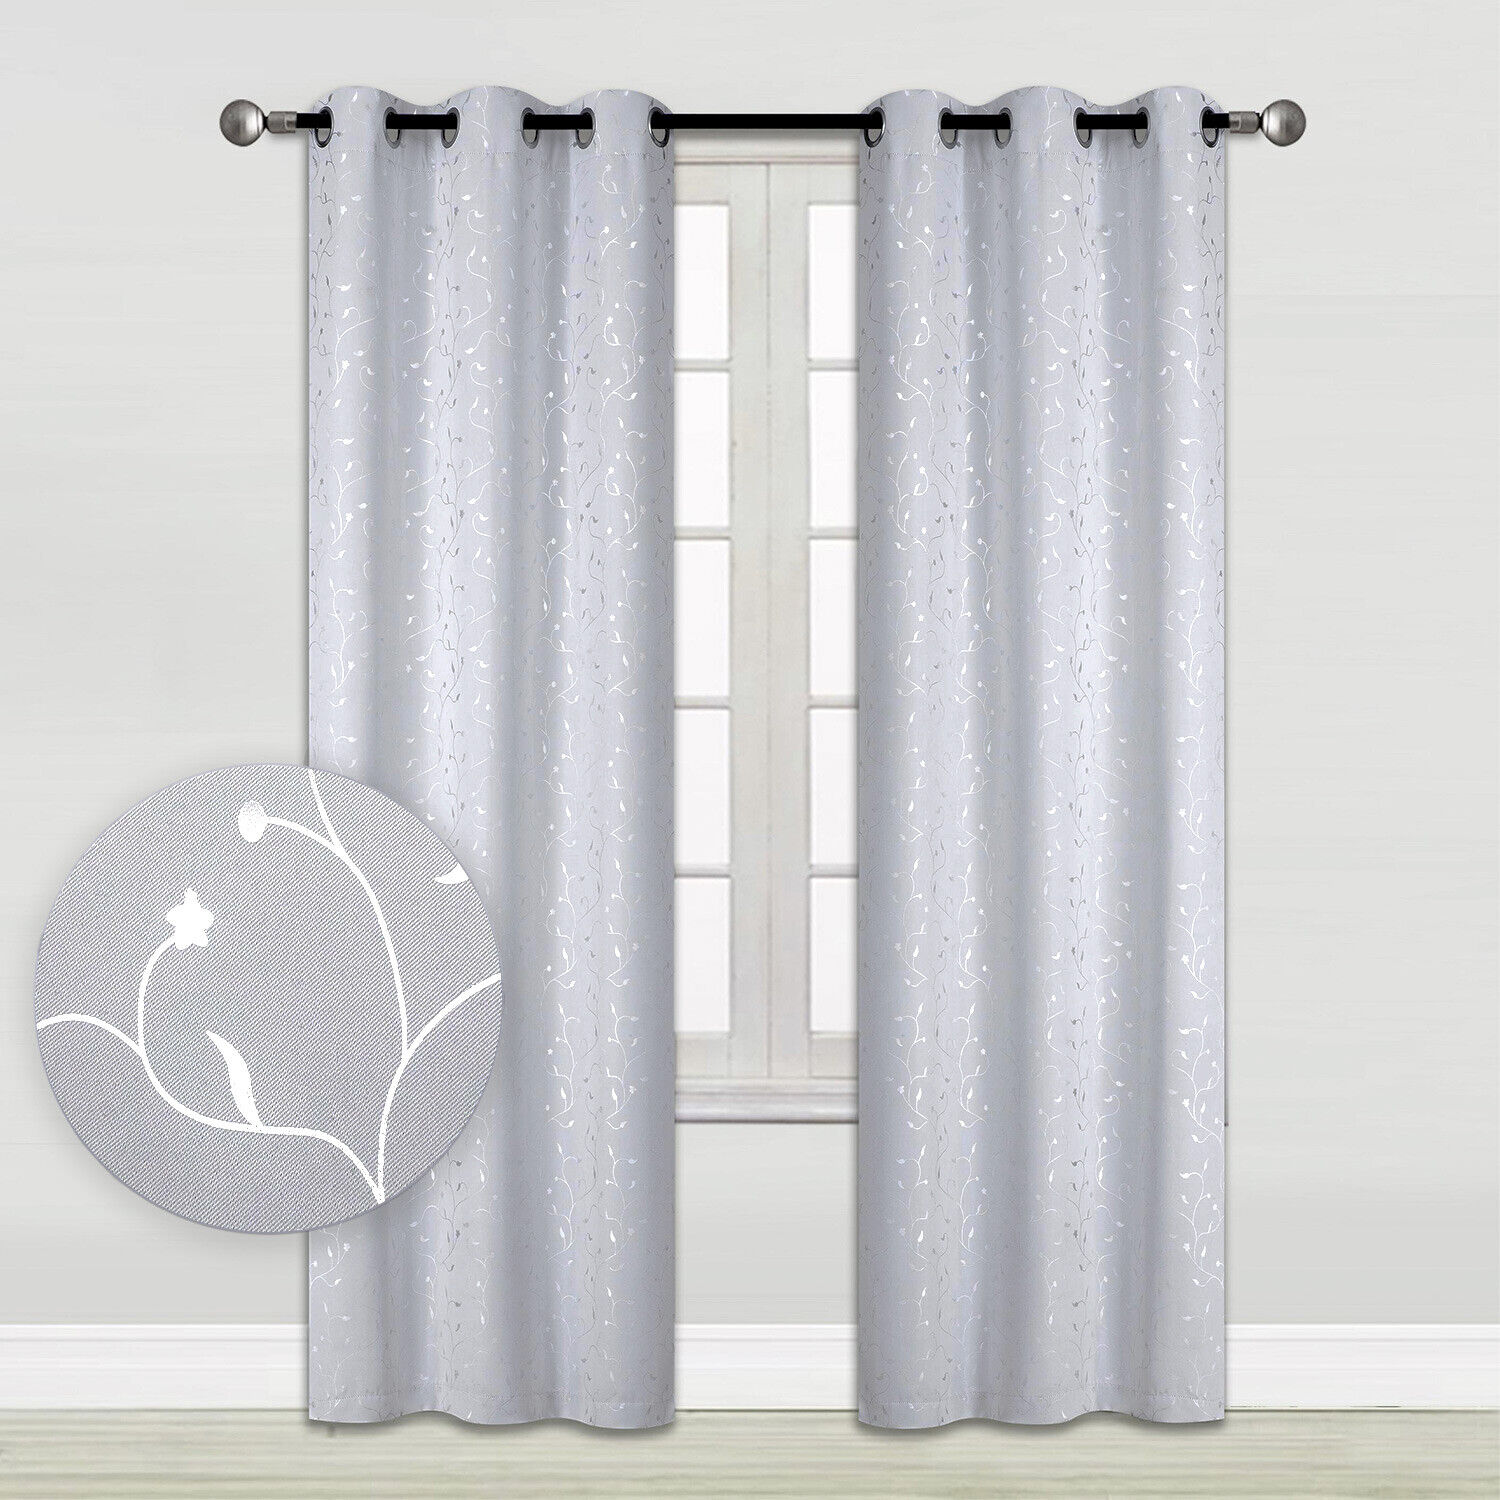 Silver Vine Embossed Blackout Window Curtains 2-Panel Pair 35″x84″ or 52″x84″ Curtains & Drapes